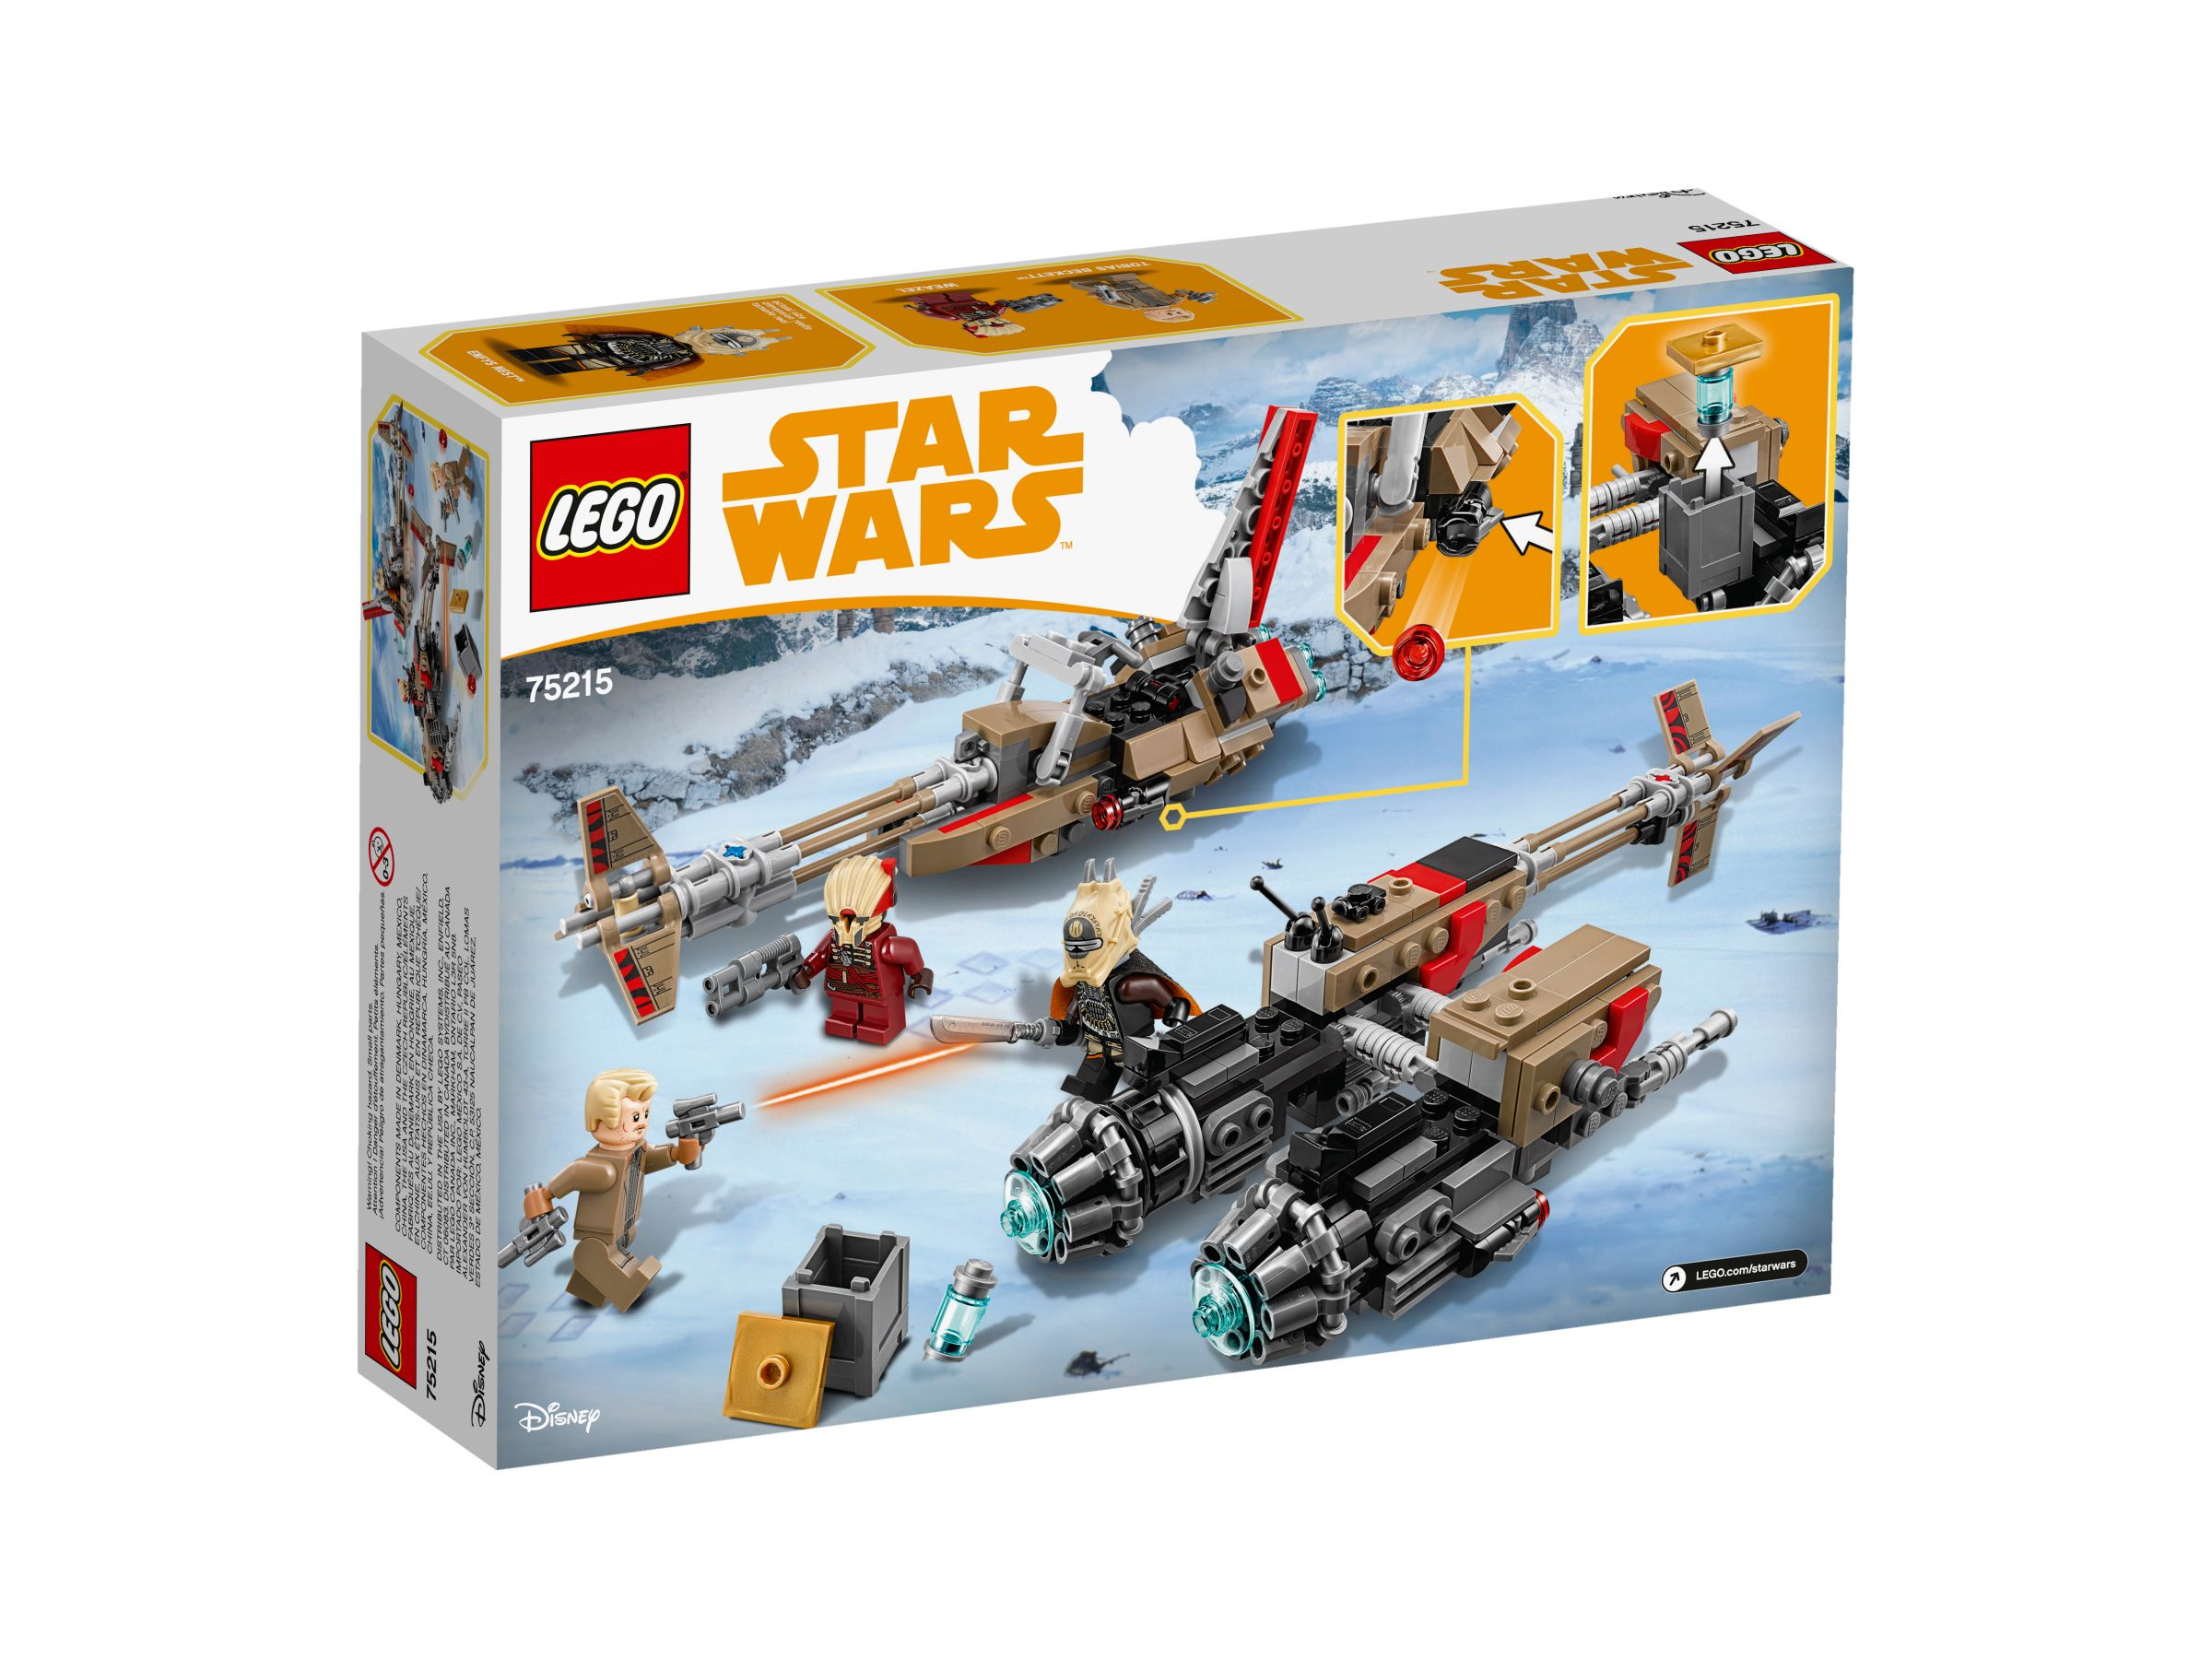 LEGO Star Wars 75215 Cloud-Rider Swoop Bikes™ LEGO_75215_alt4.jpg